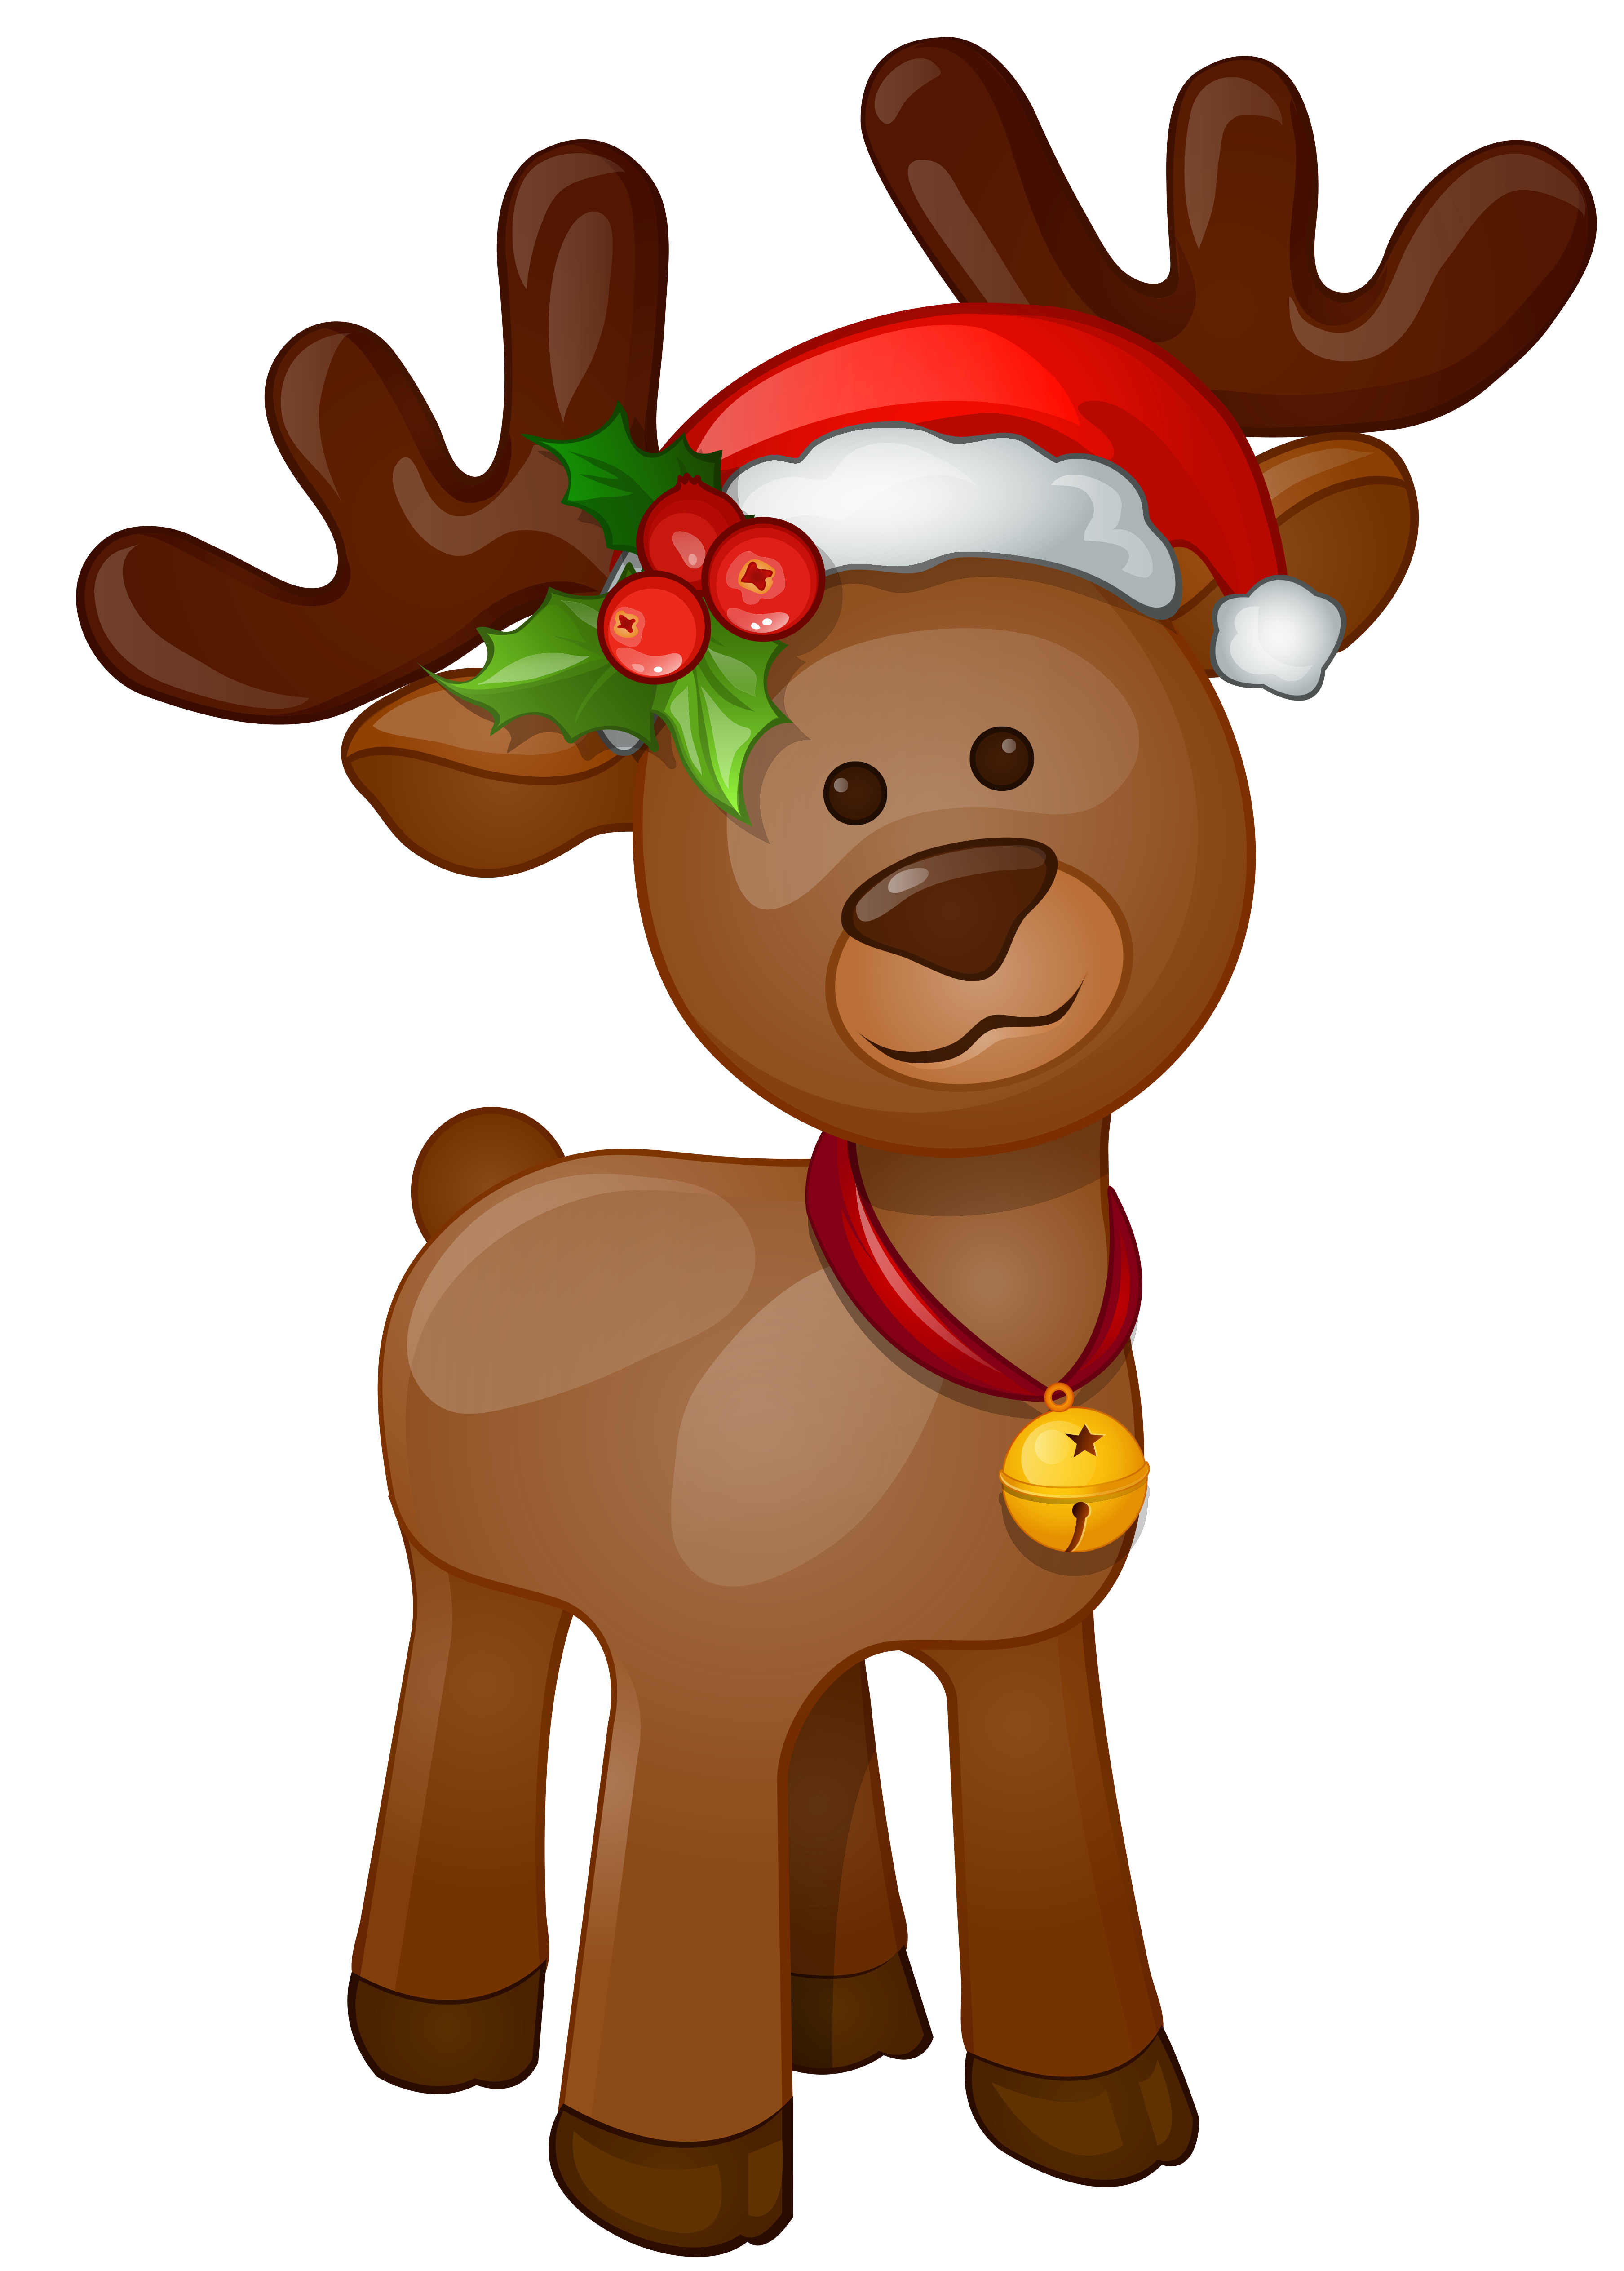 Rudolph clipart. Png clip art image